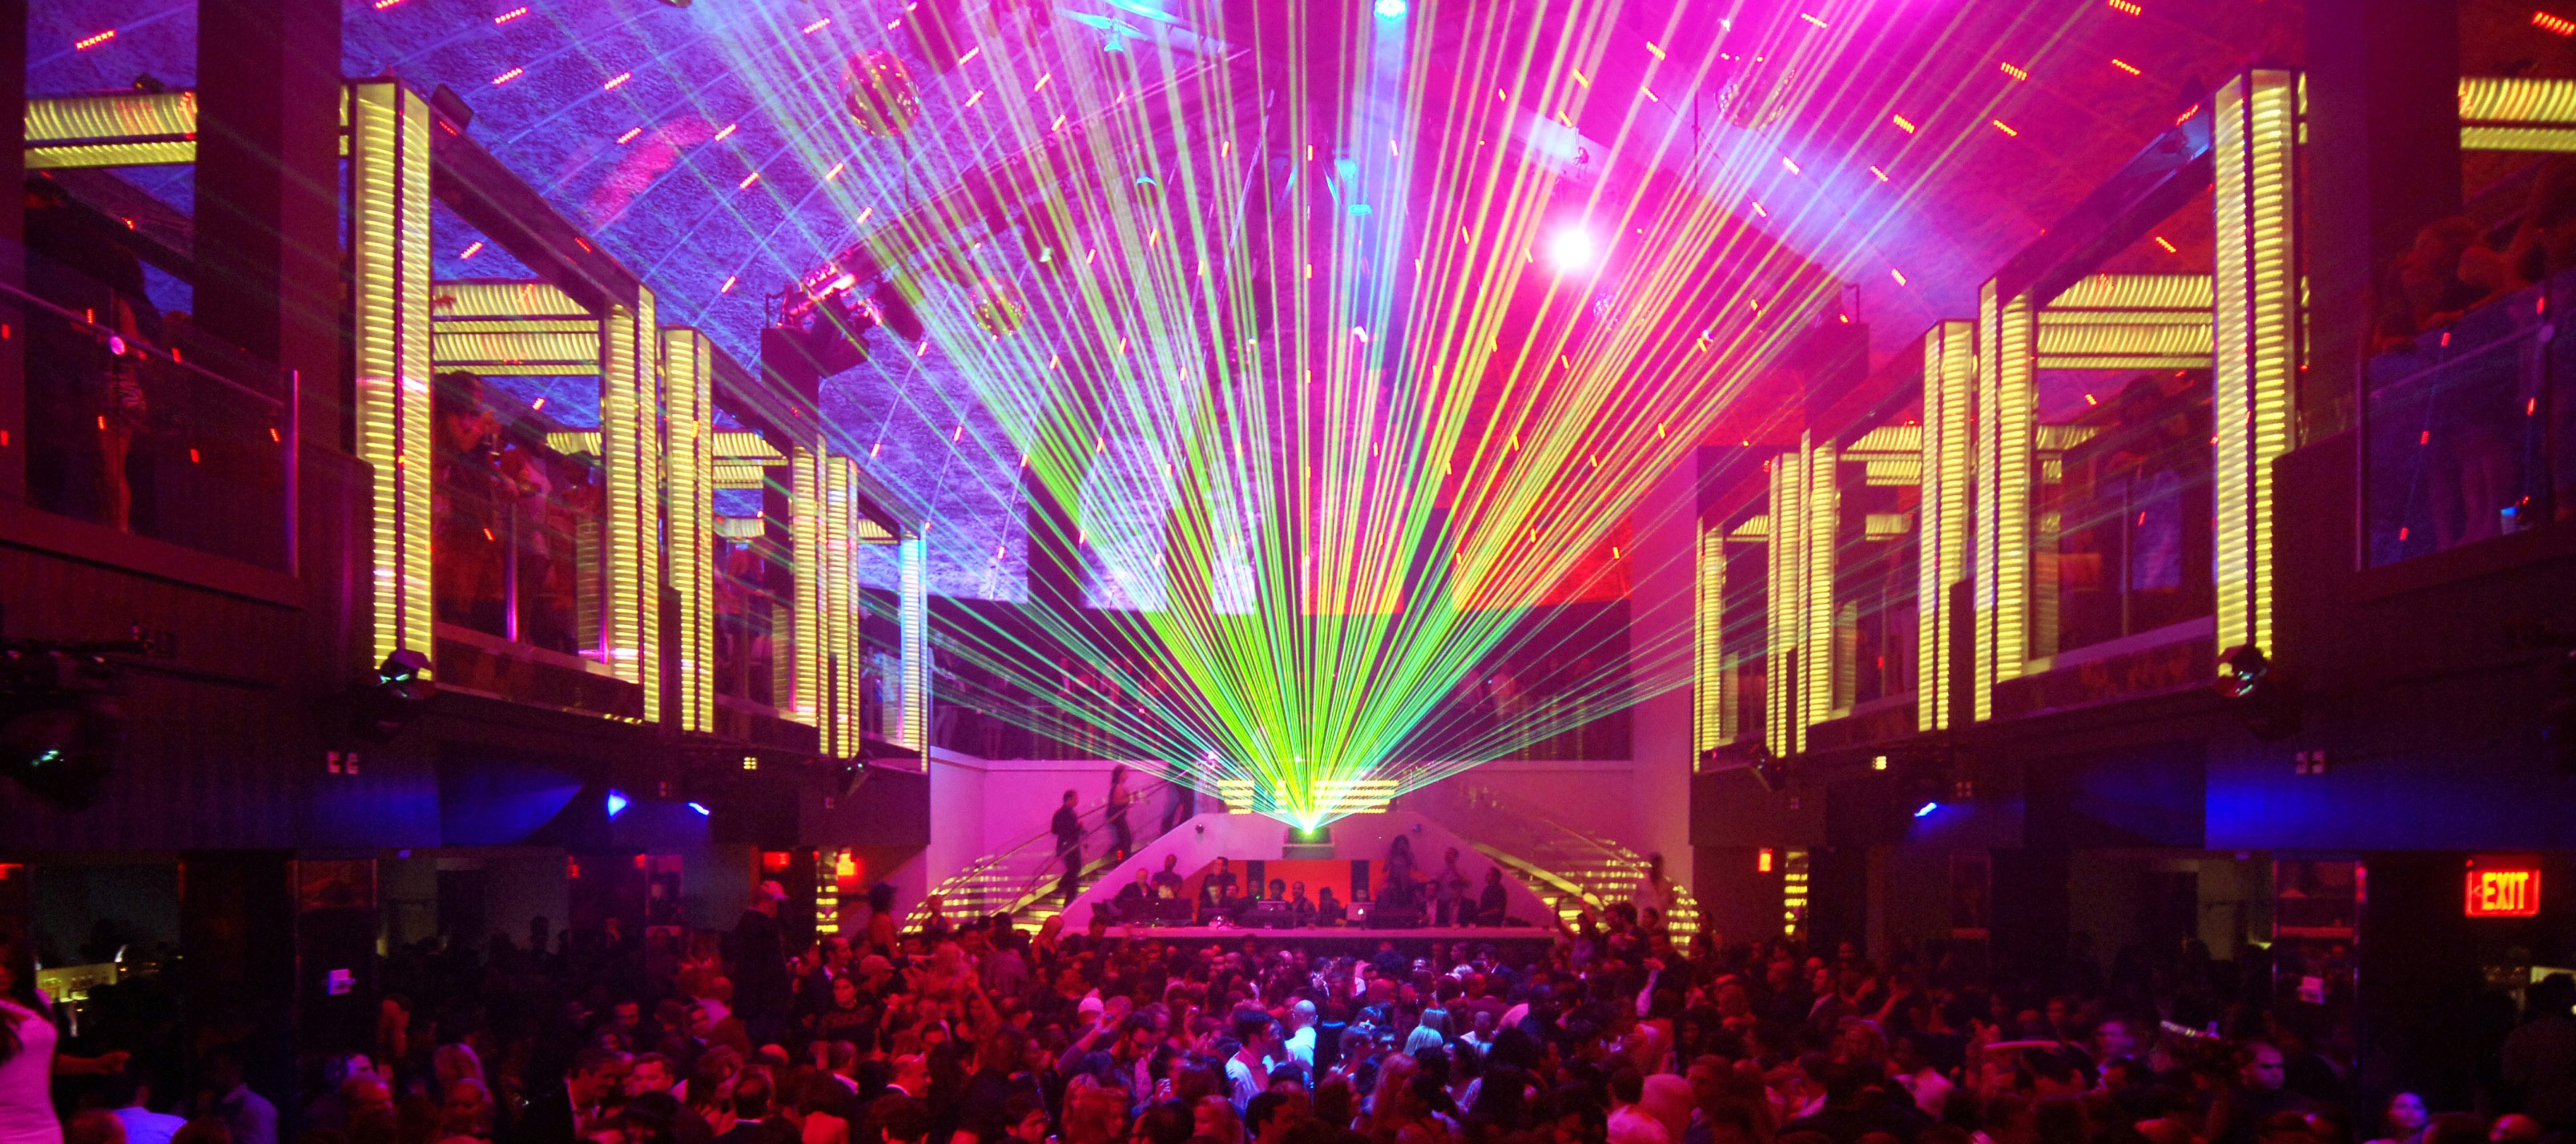 The Top 10 Nightclubs in the World